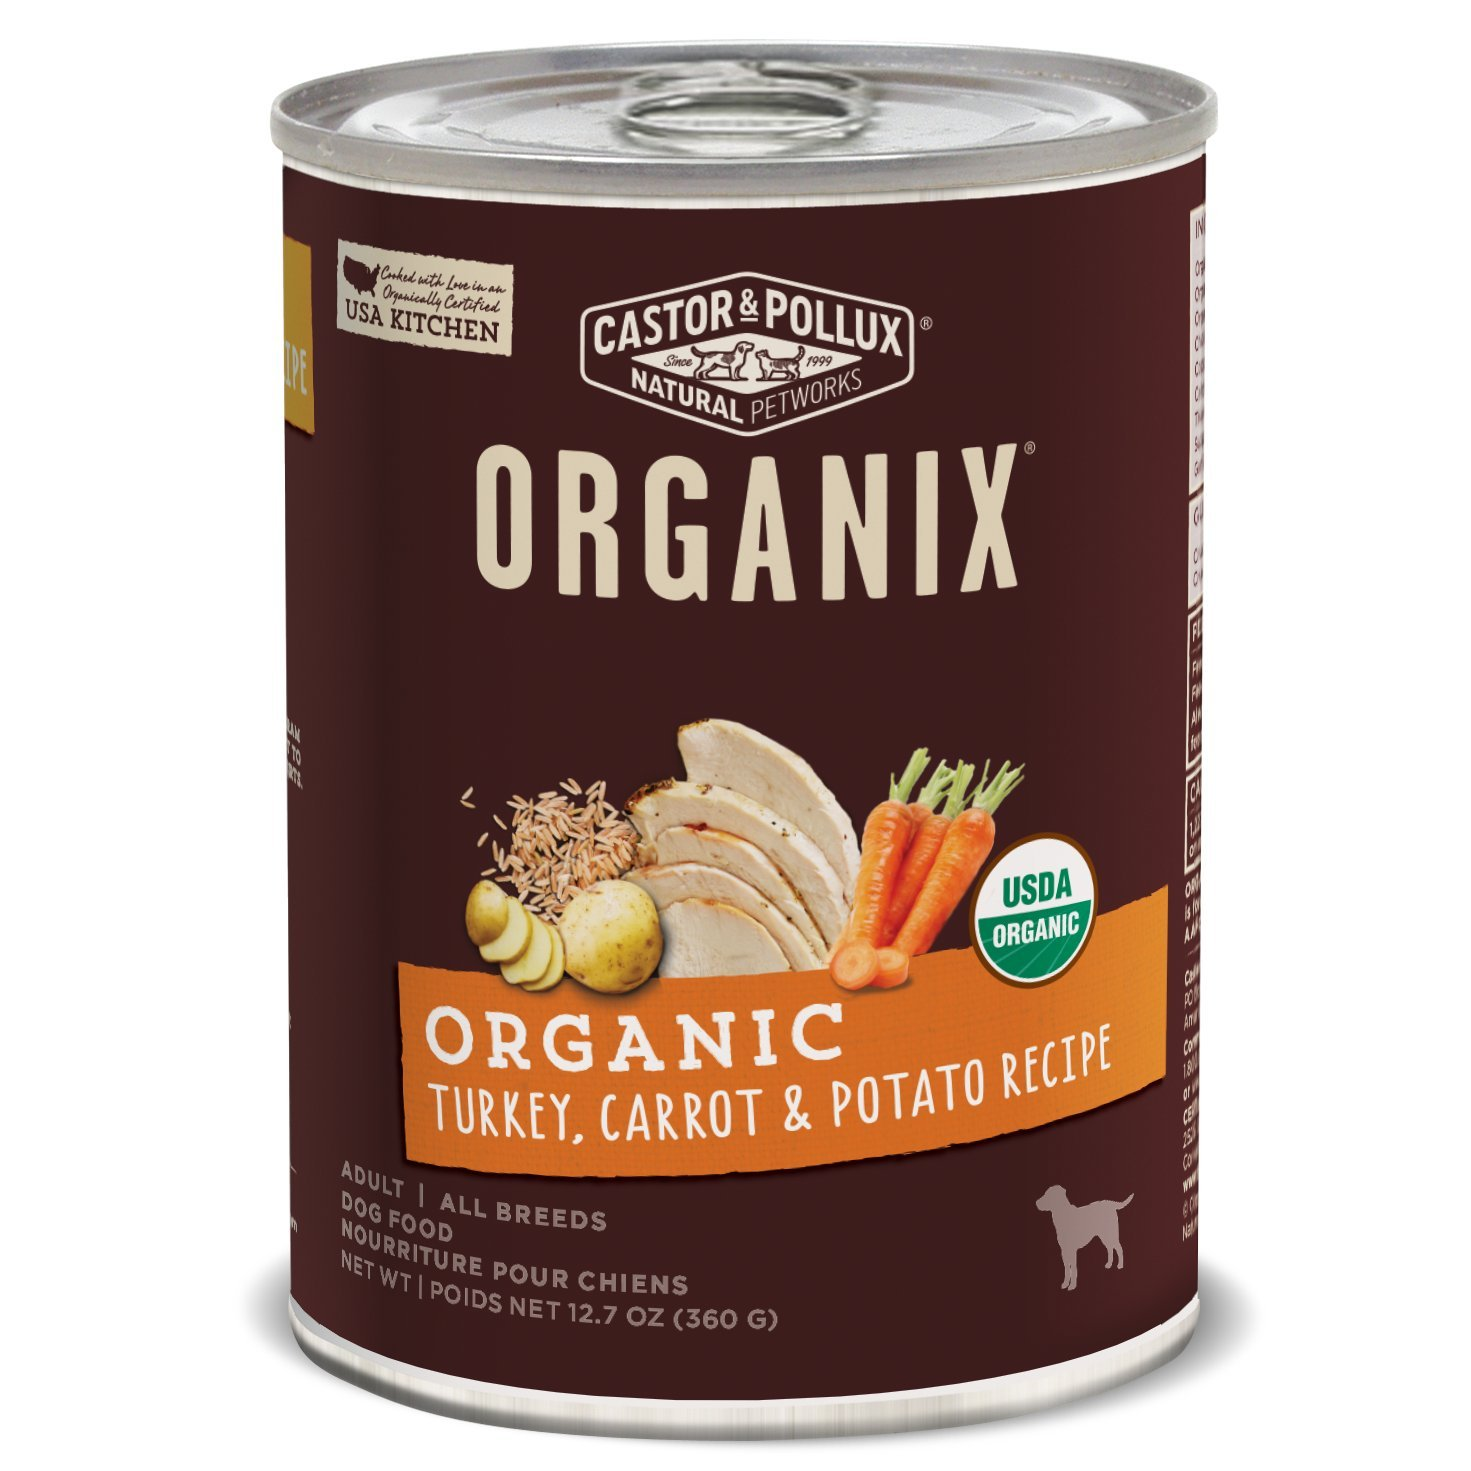 Castor & Pollux Organix Organic Turkey, Carrot & Potato Recipe, 12.7 oz, Case of 12 Cans